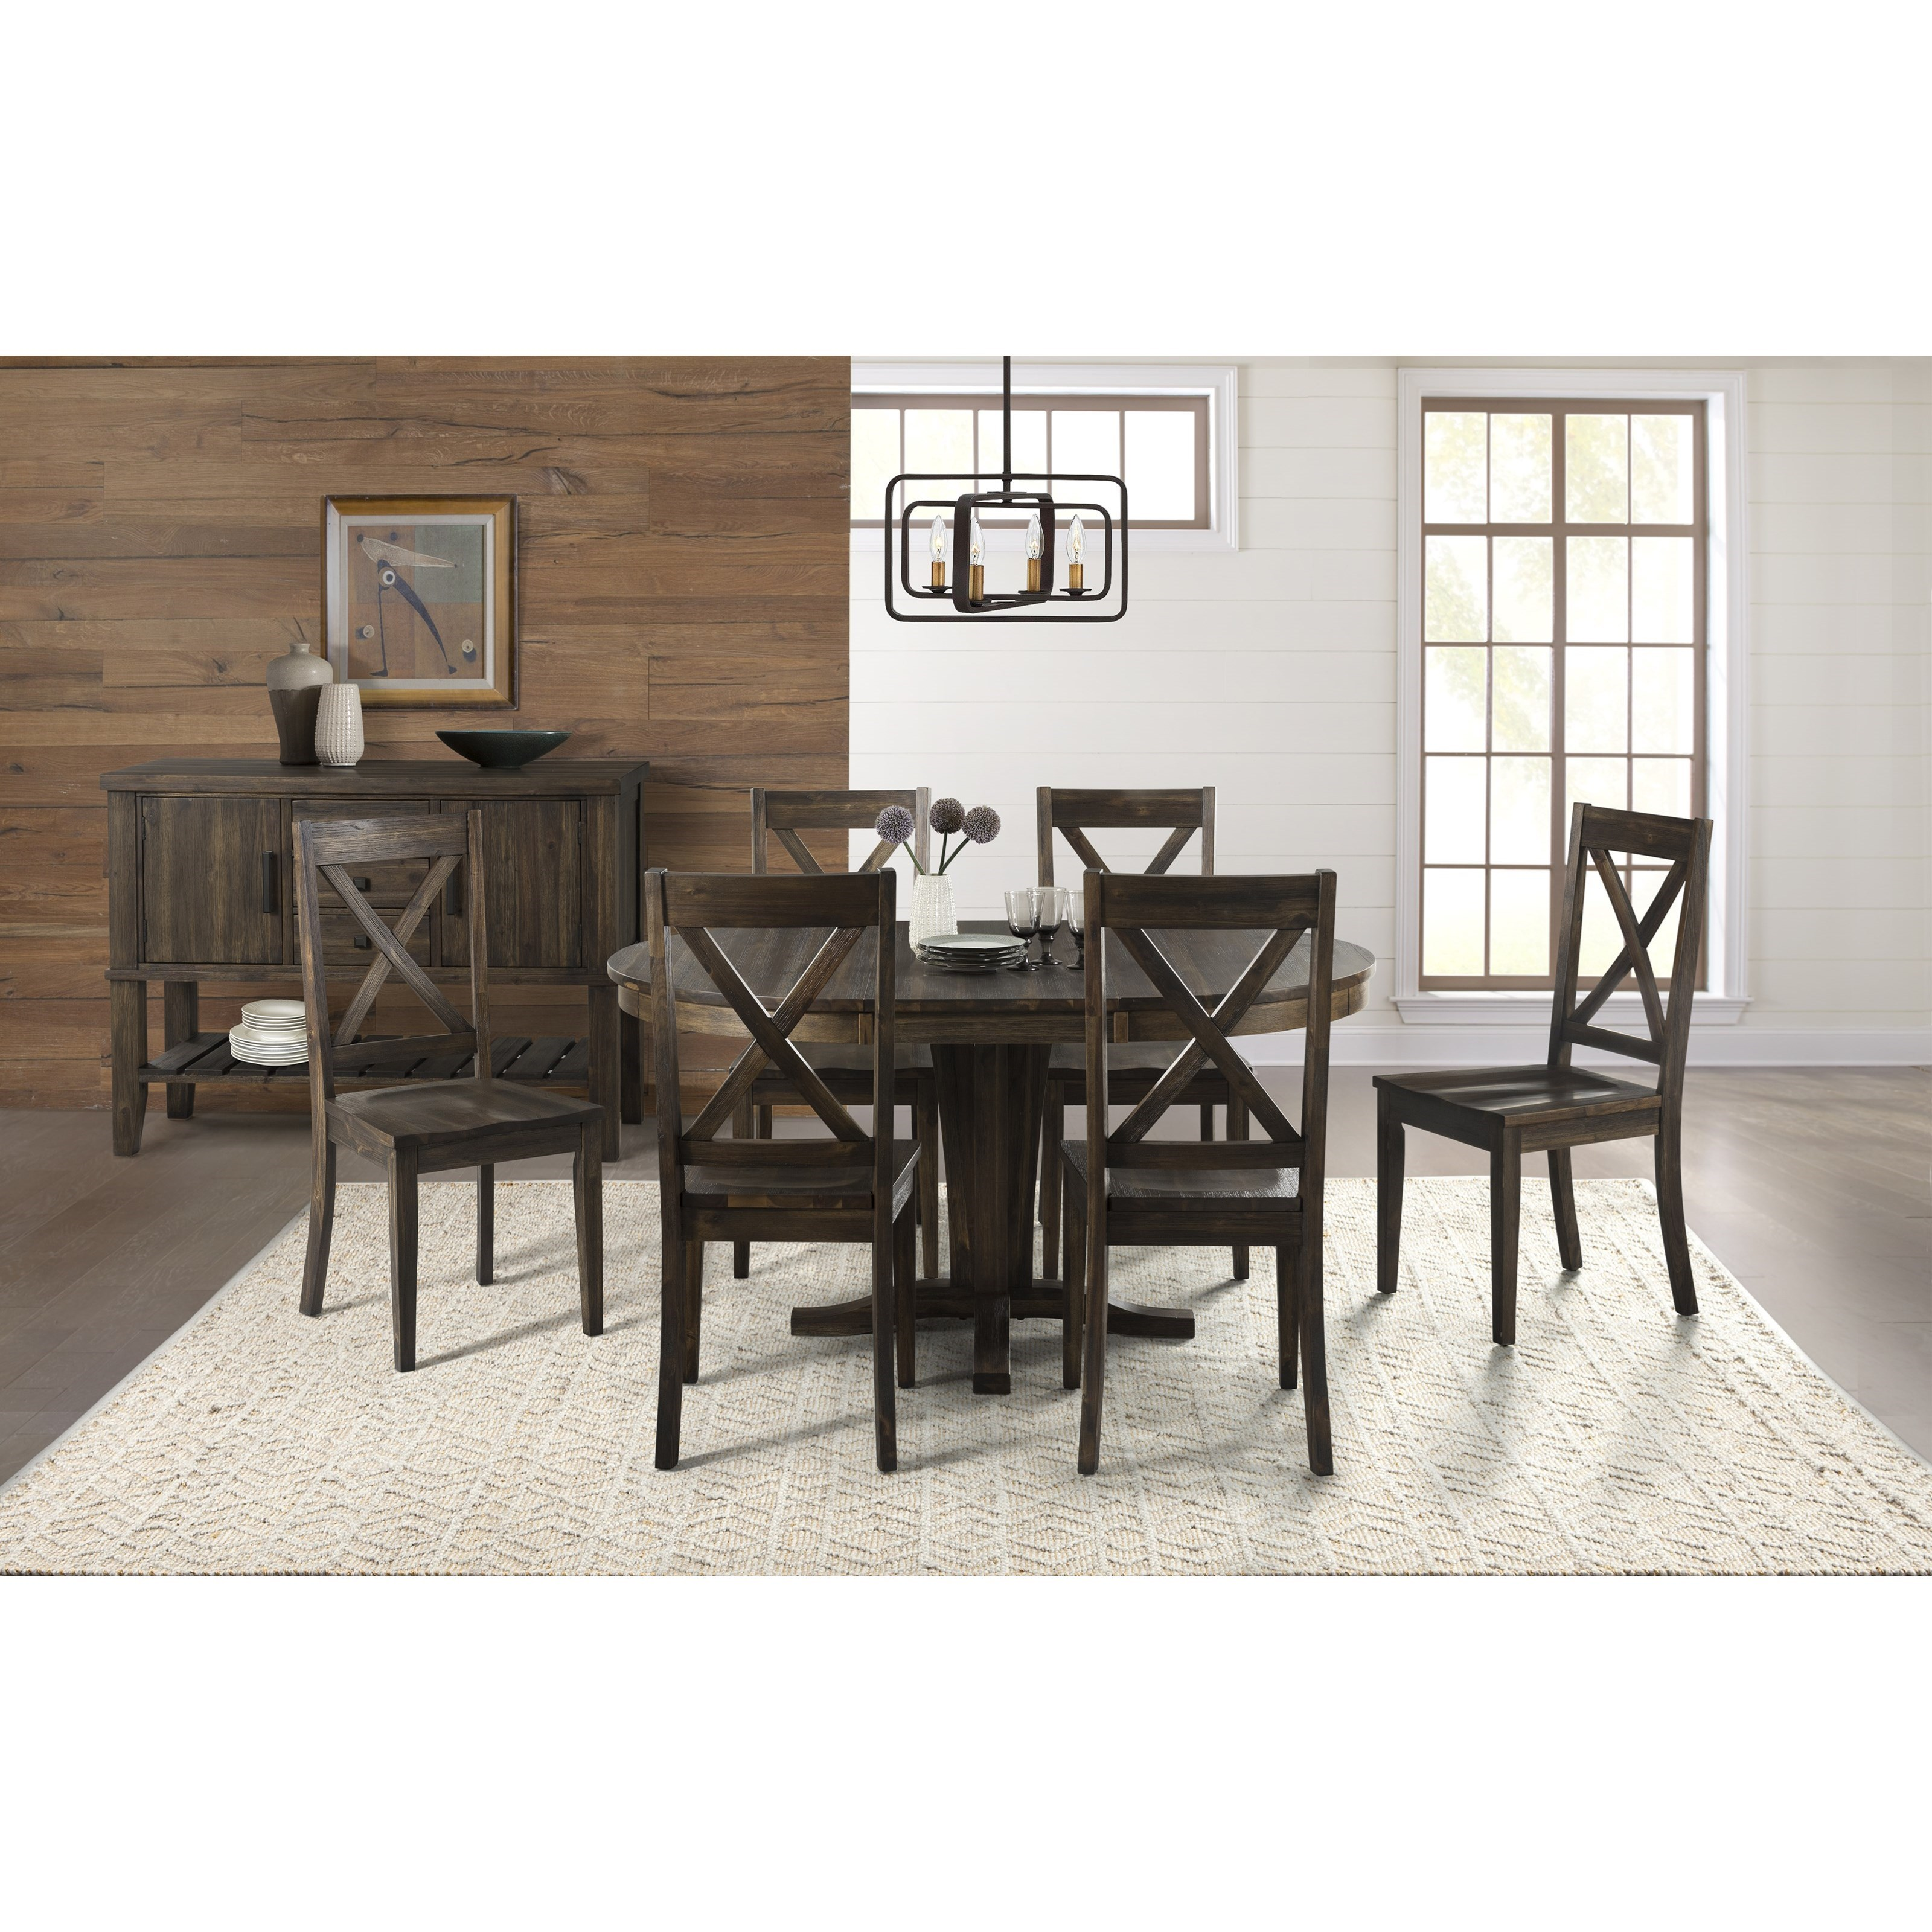 Aamerica Huron Transitional Solid Wood Pedestal Table With